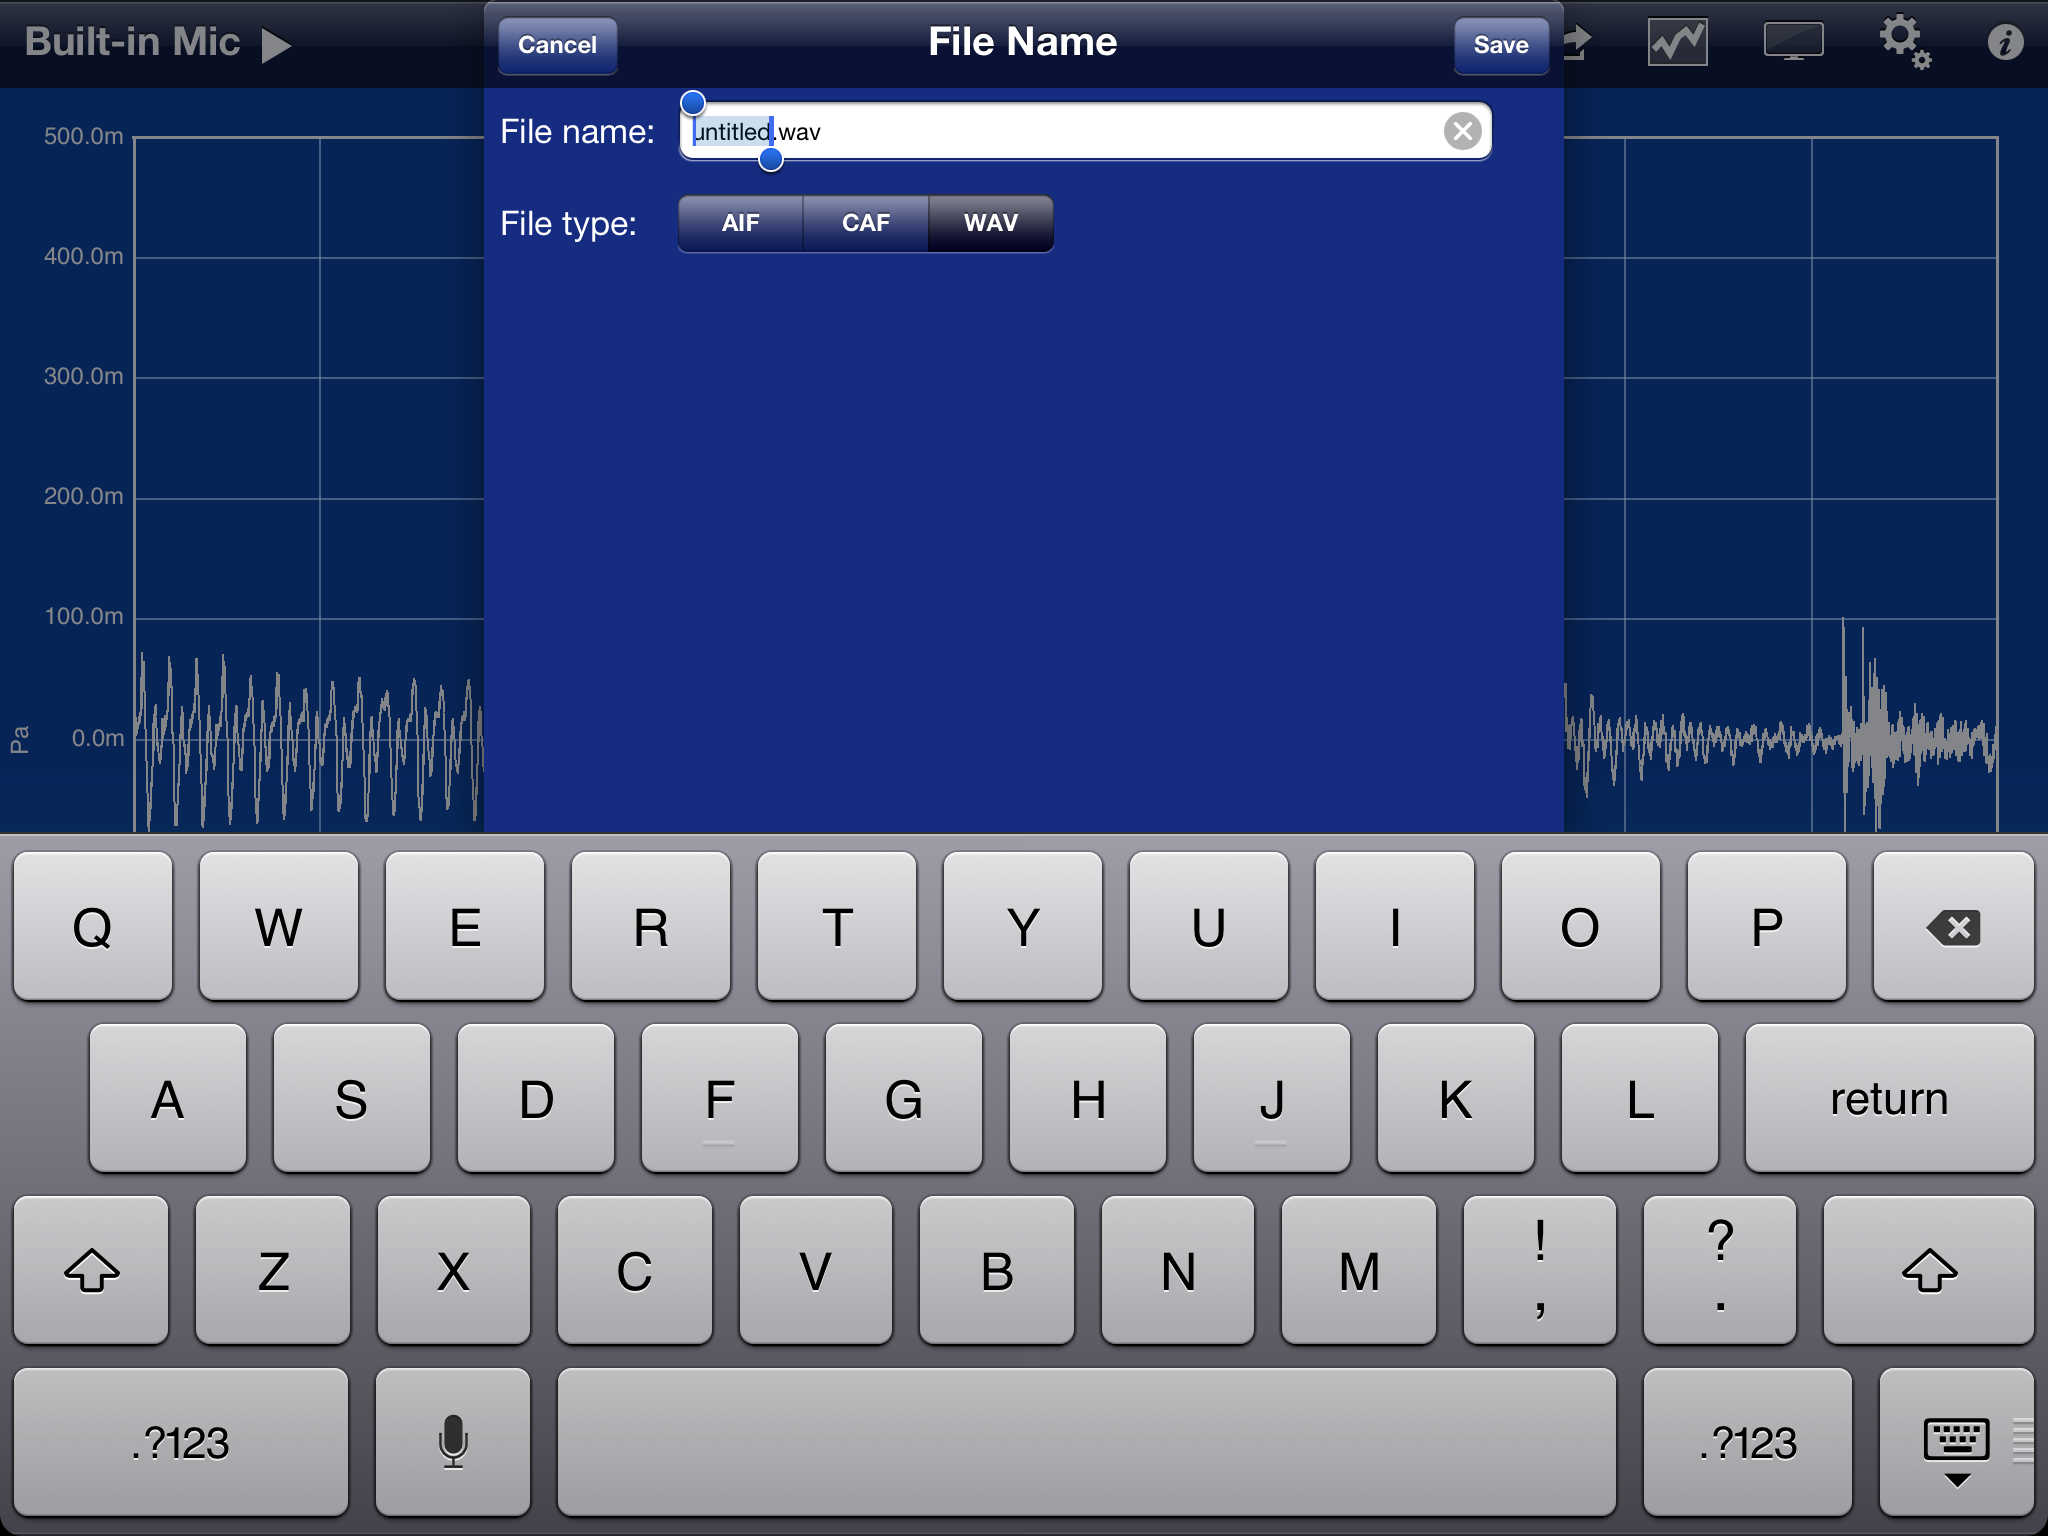 SignalScope Pro Audio File Name